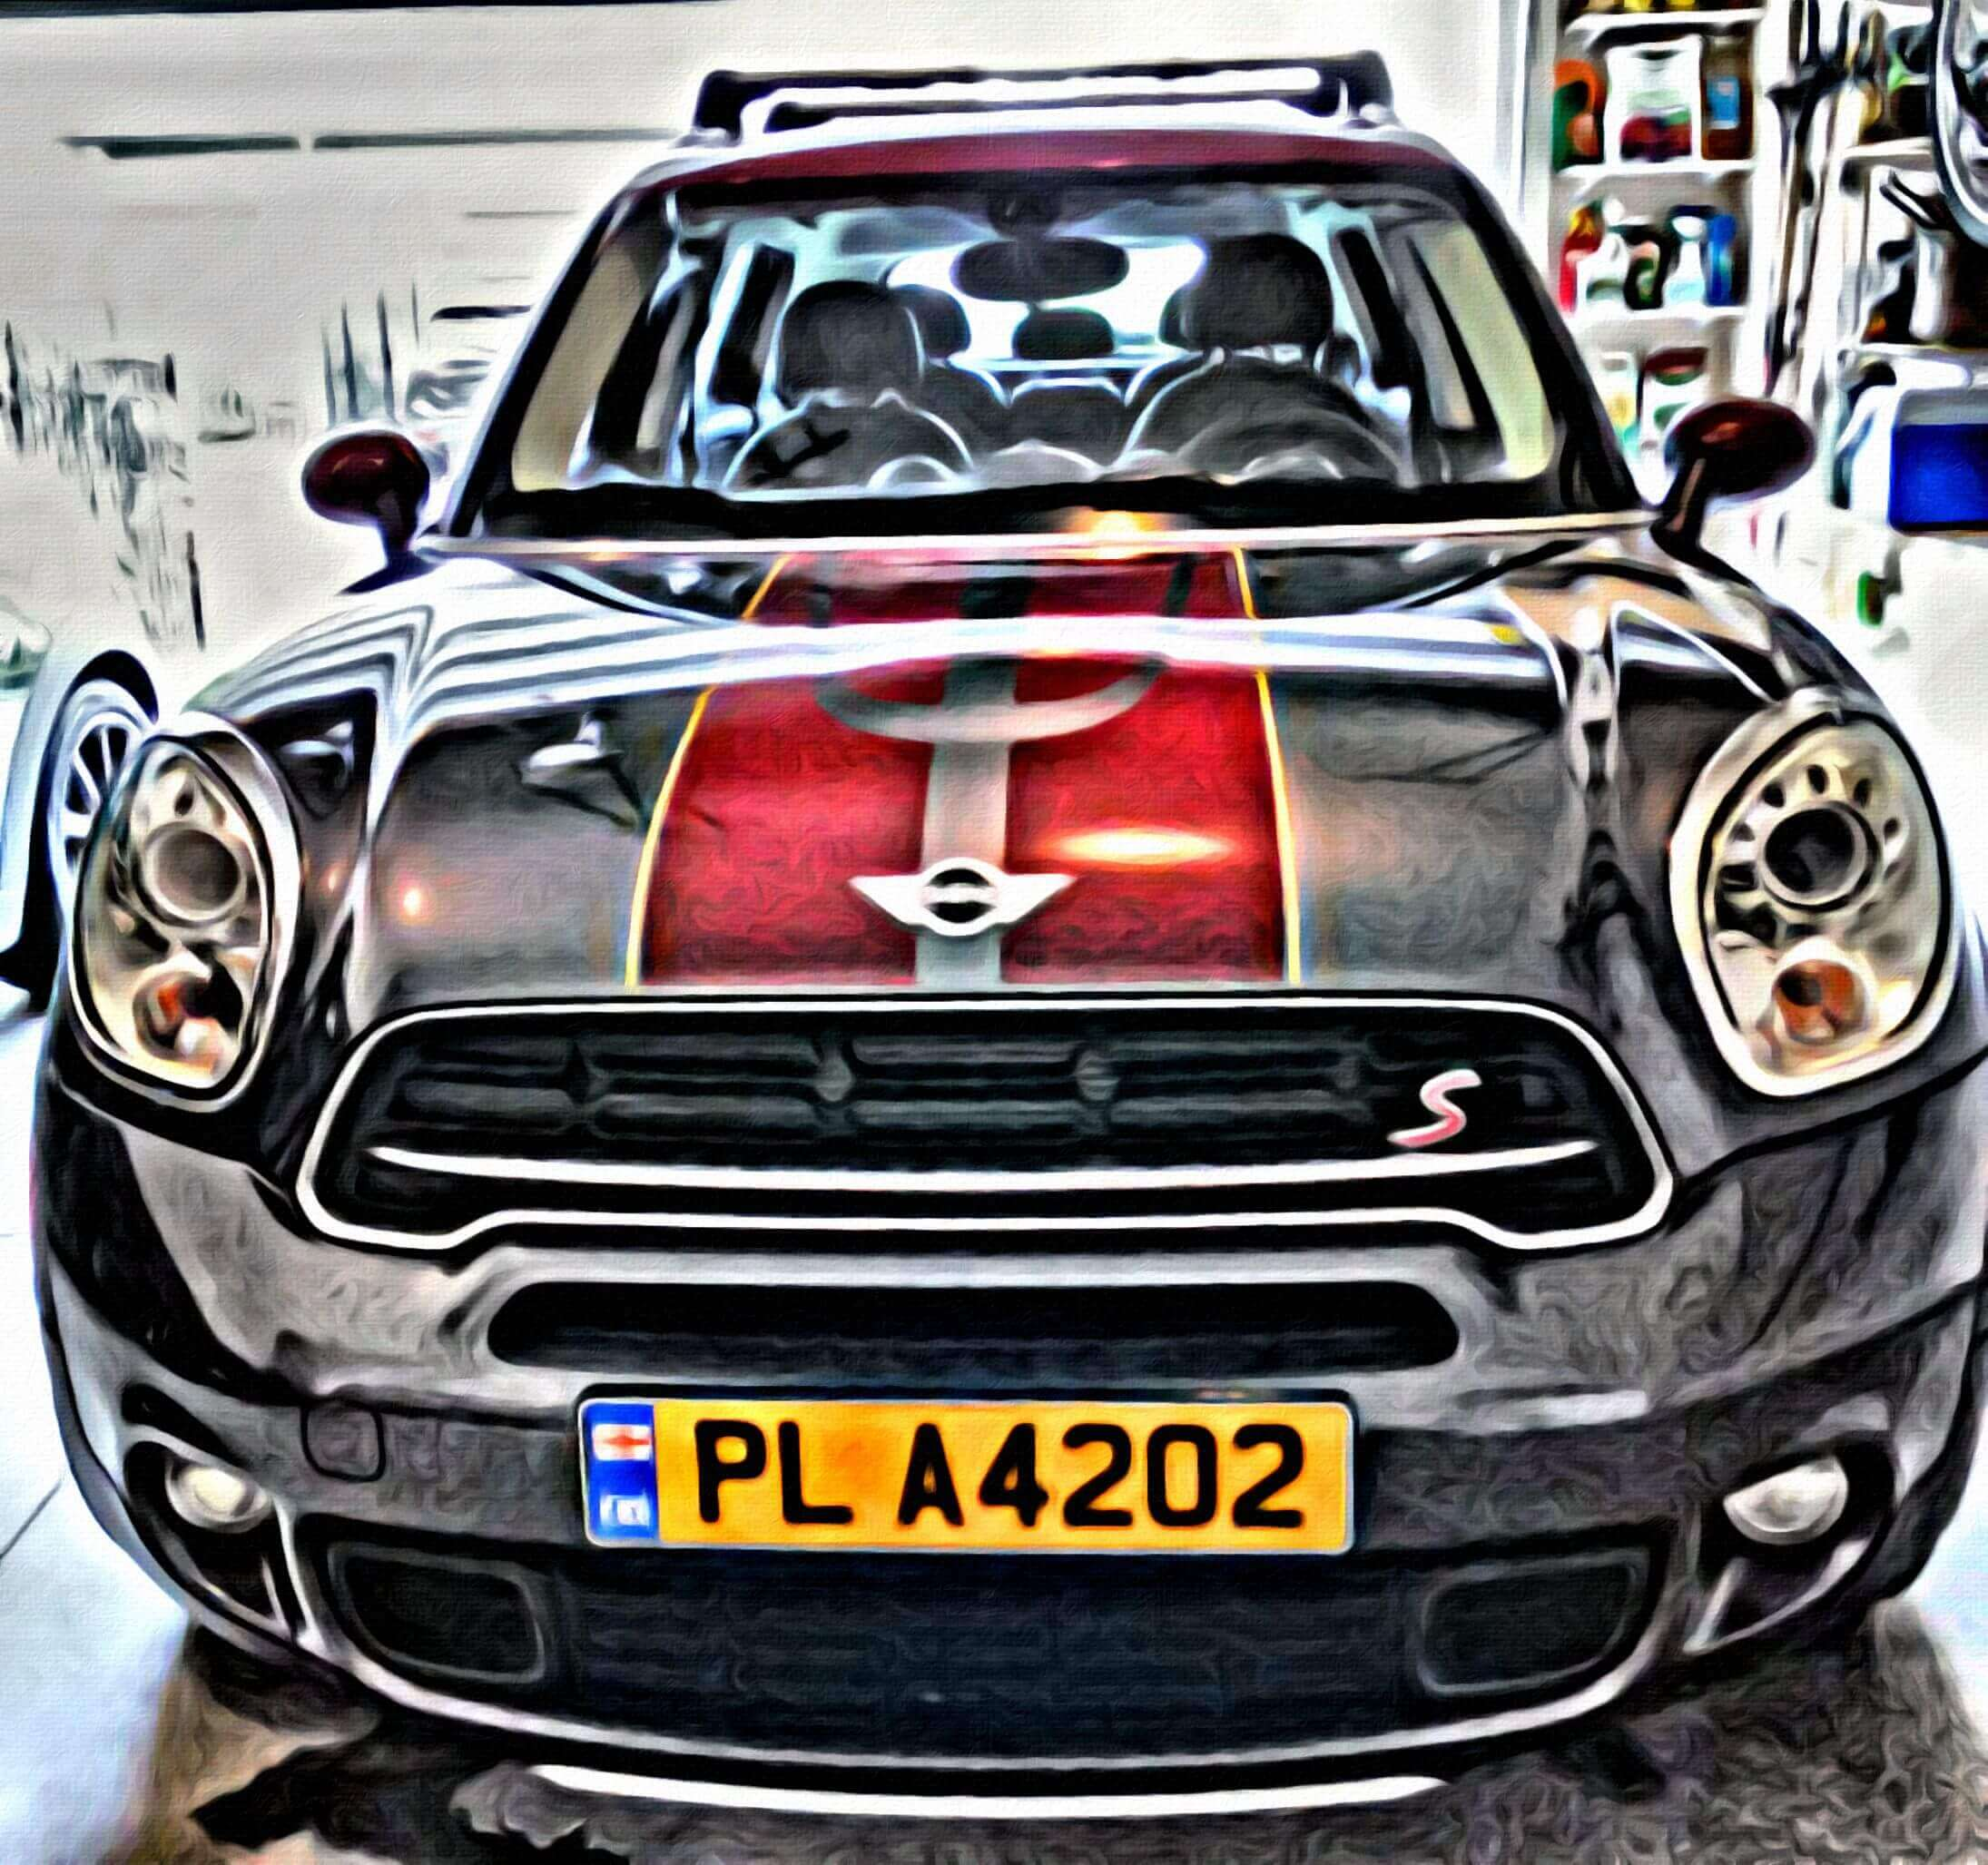 Mini cooper rubber floor mats uk - Manual Trans Navigation Sunroof Earl Grey 18 Fan Blade Wheels And Complete With Roof Rails And All Weather Mats Accented Red Oak Stripes With A Yellow